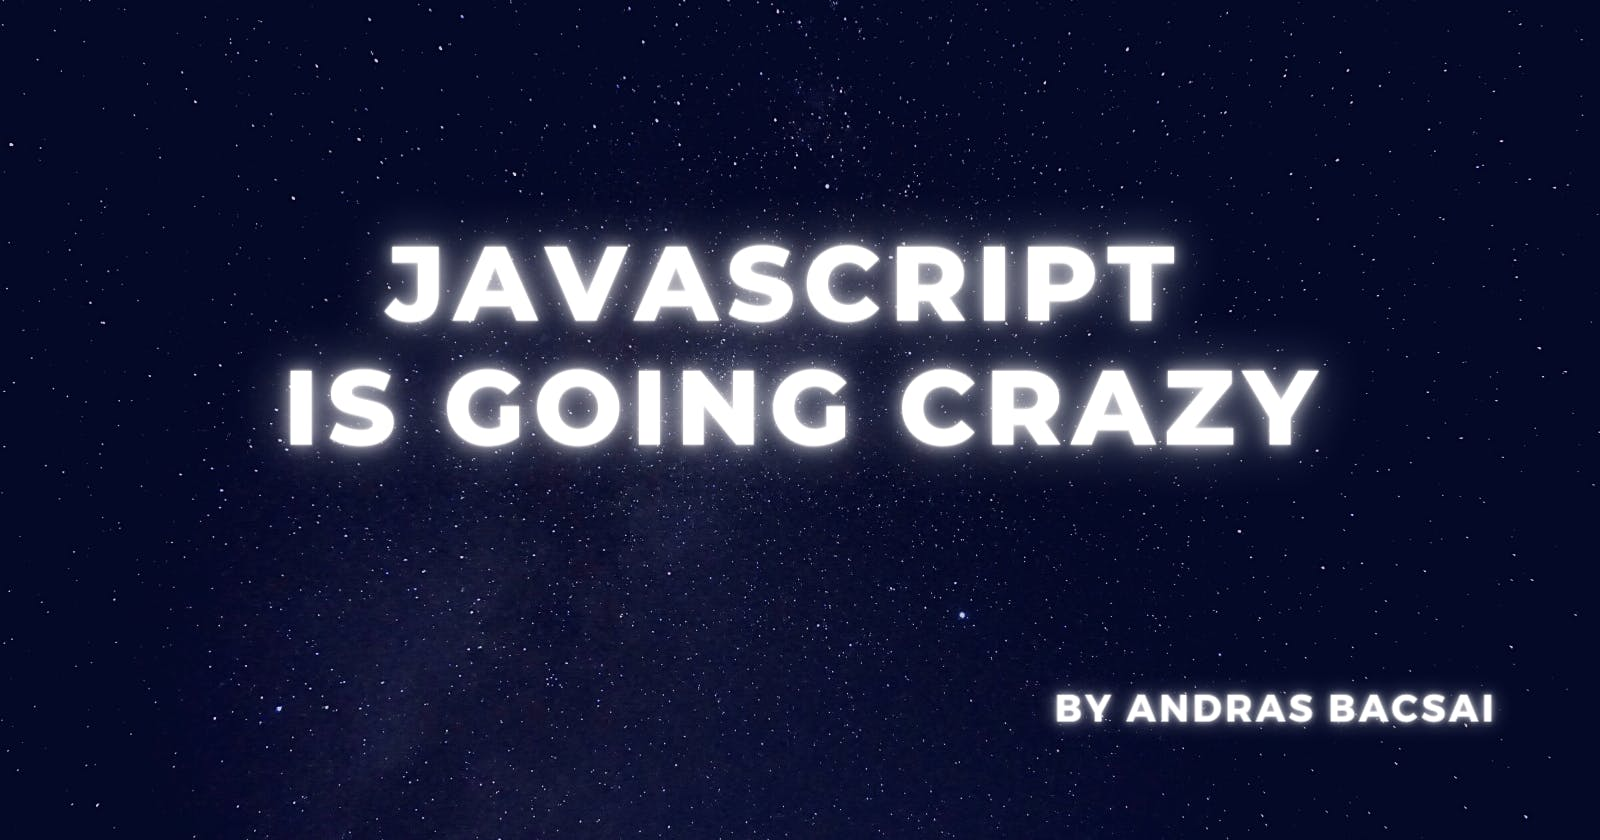 Javascript is going crazy